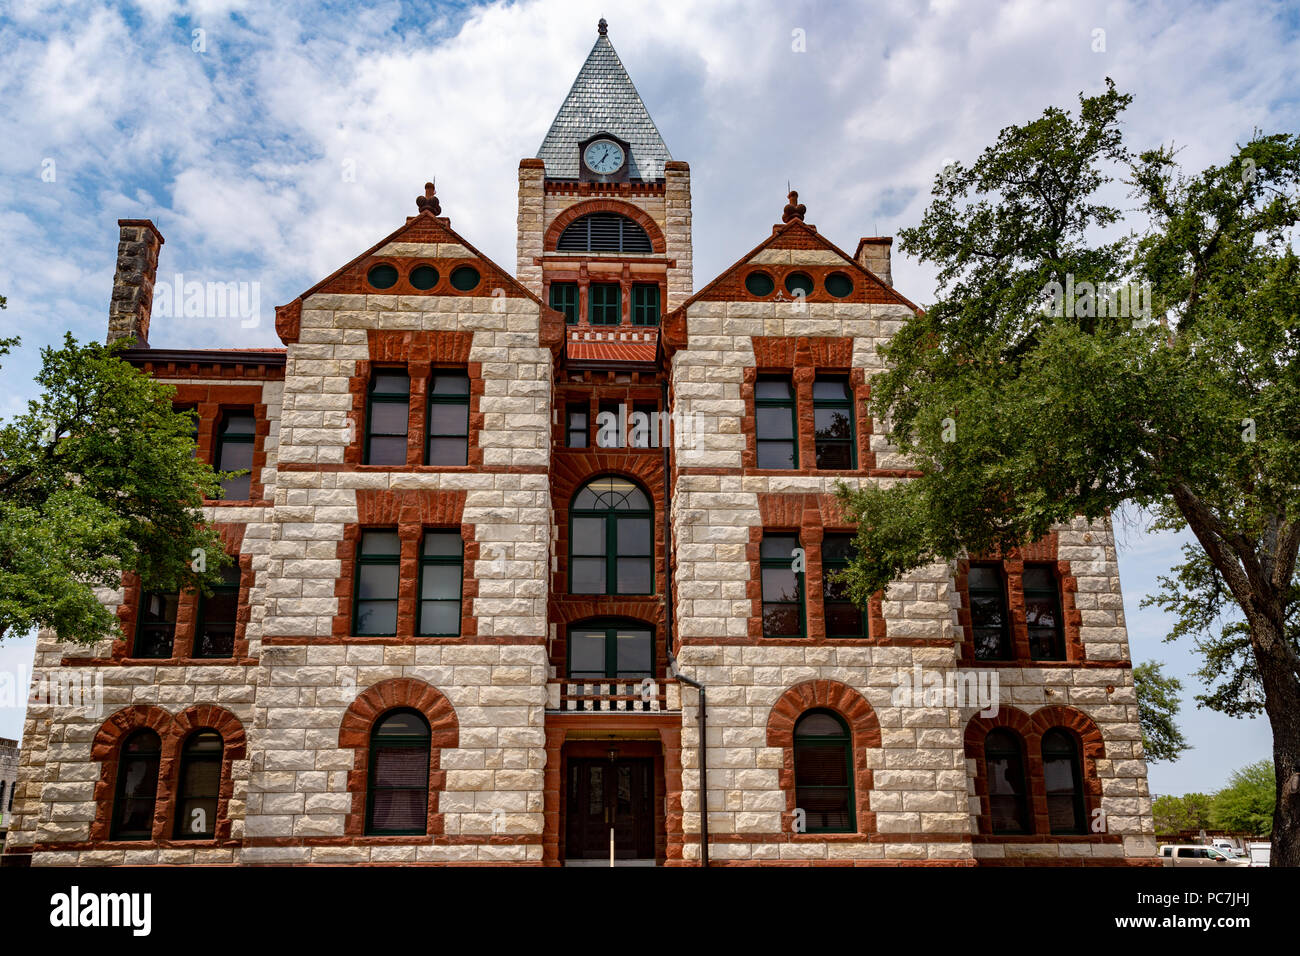 The historic 1892 Erath county courthouse in Stephenville Texas designed by James Riely Gordon in Romanesque Revival style. - Stock Image